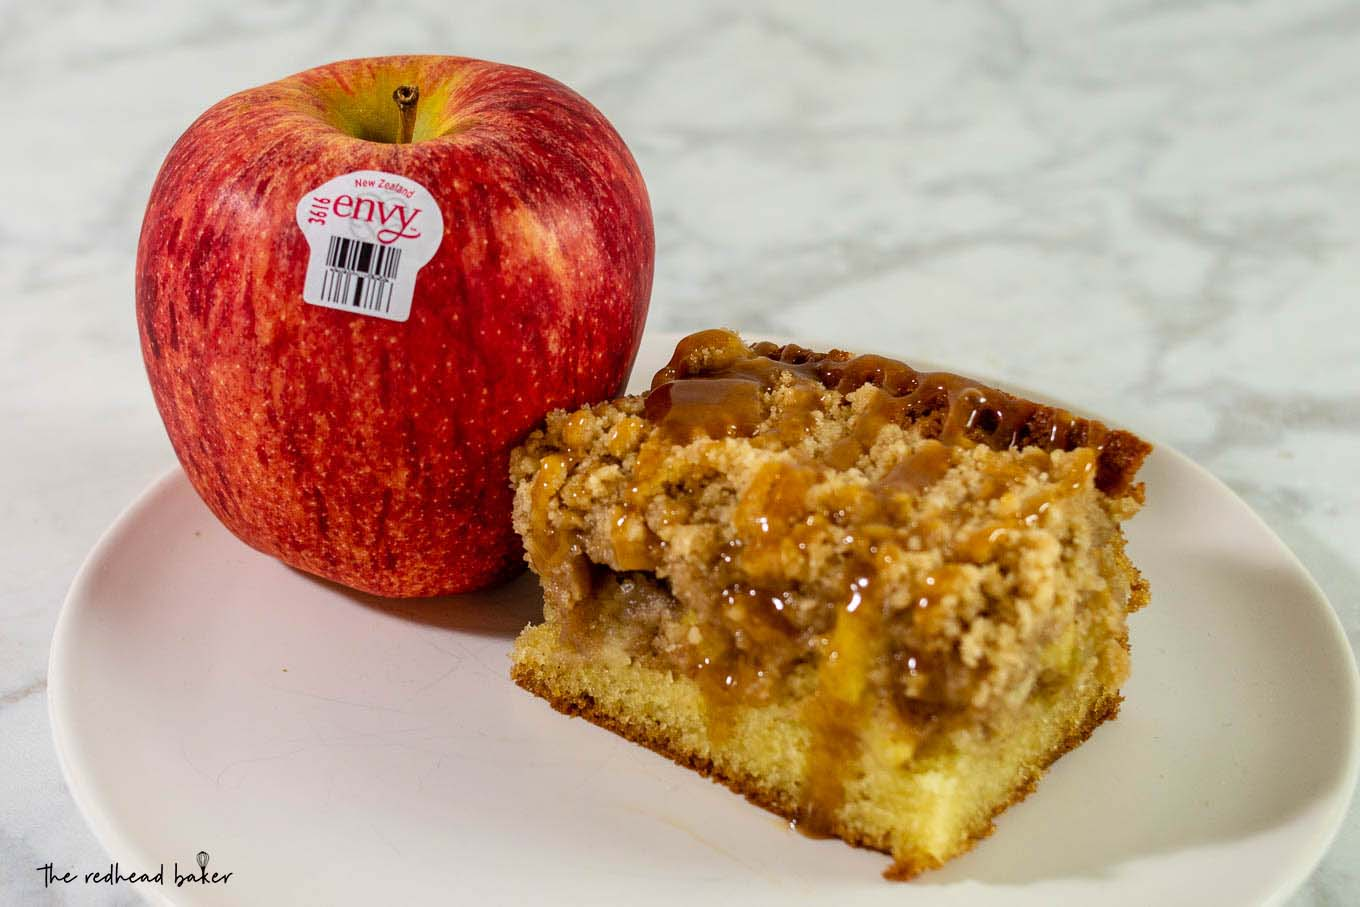 A slice of caramel apple crumb cake next to an Envy apple.